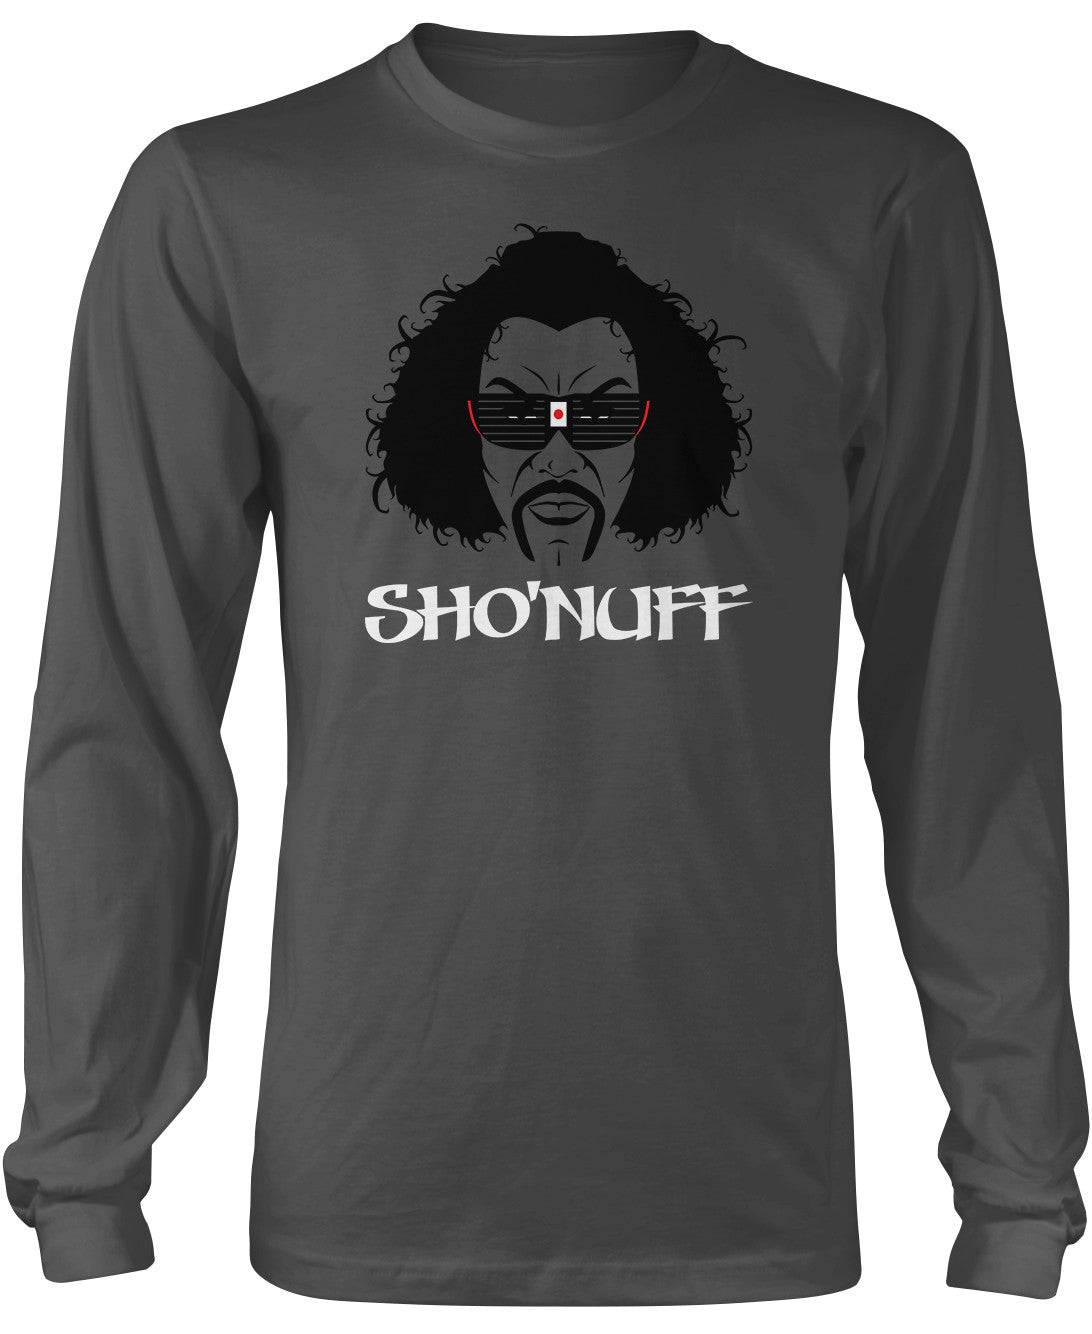 Sho'nuff Long Sleeve Shirt - Exclusive Limited Edition